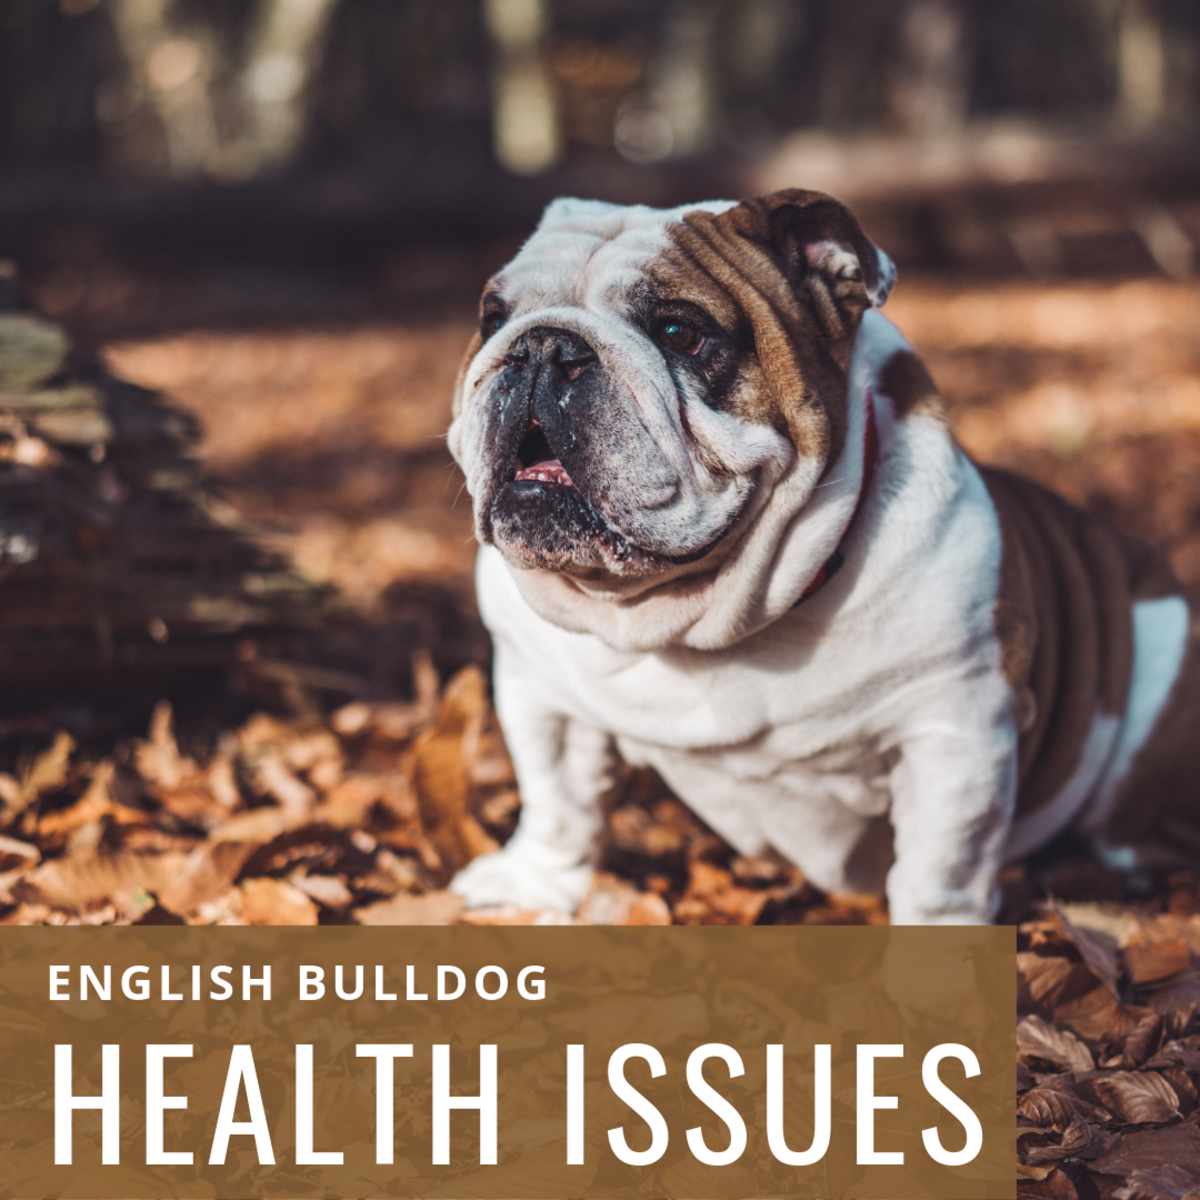 Raising Awareness About English Bulldog Health Issues ...